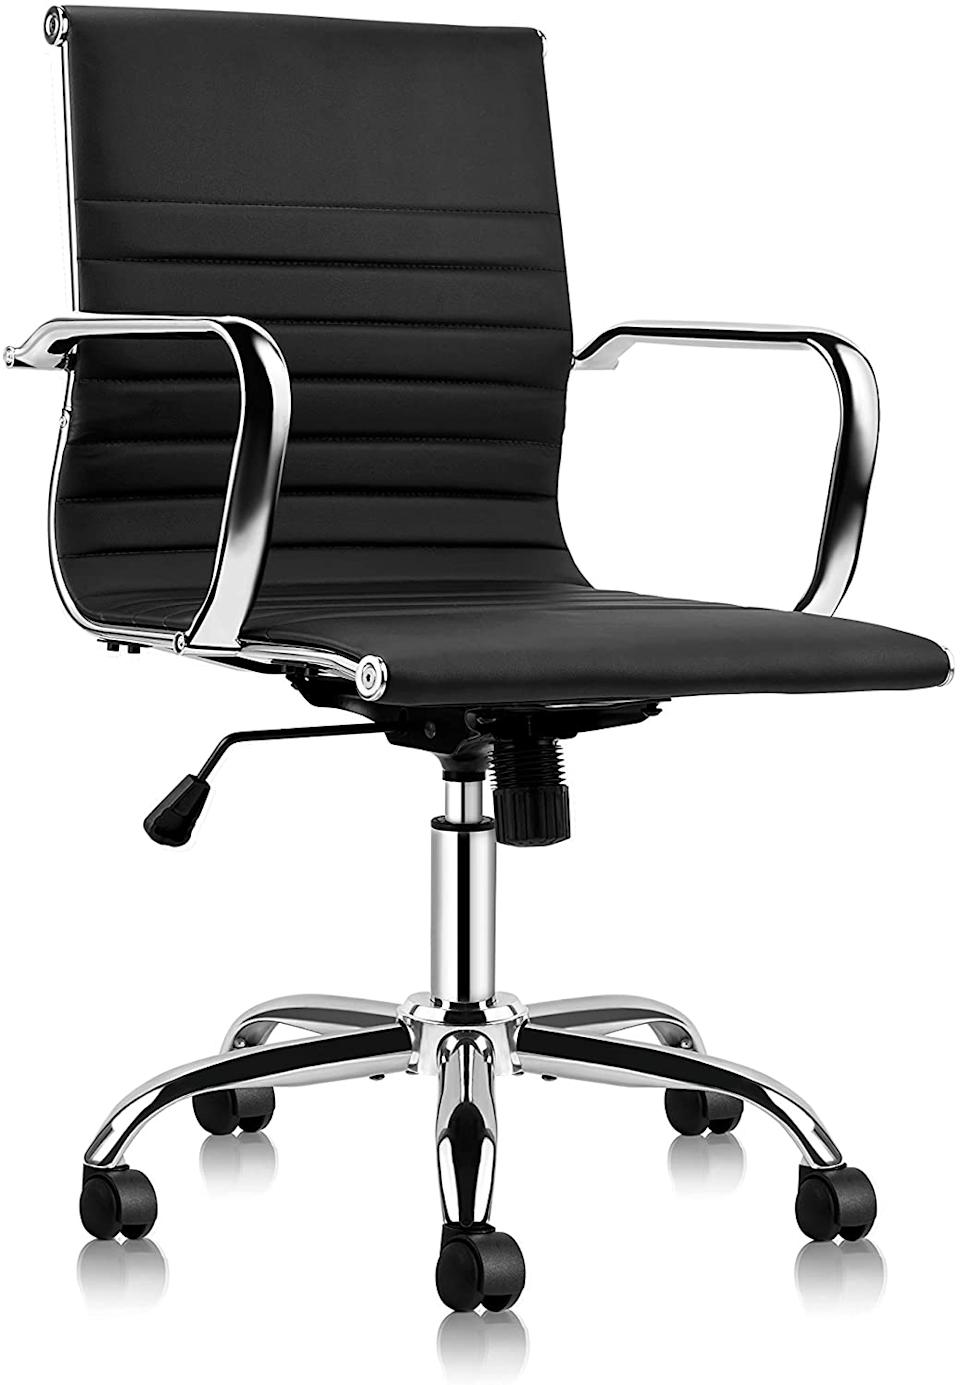 Mastery Mart Mid-Back Office Chair (Photo via Amazon)